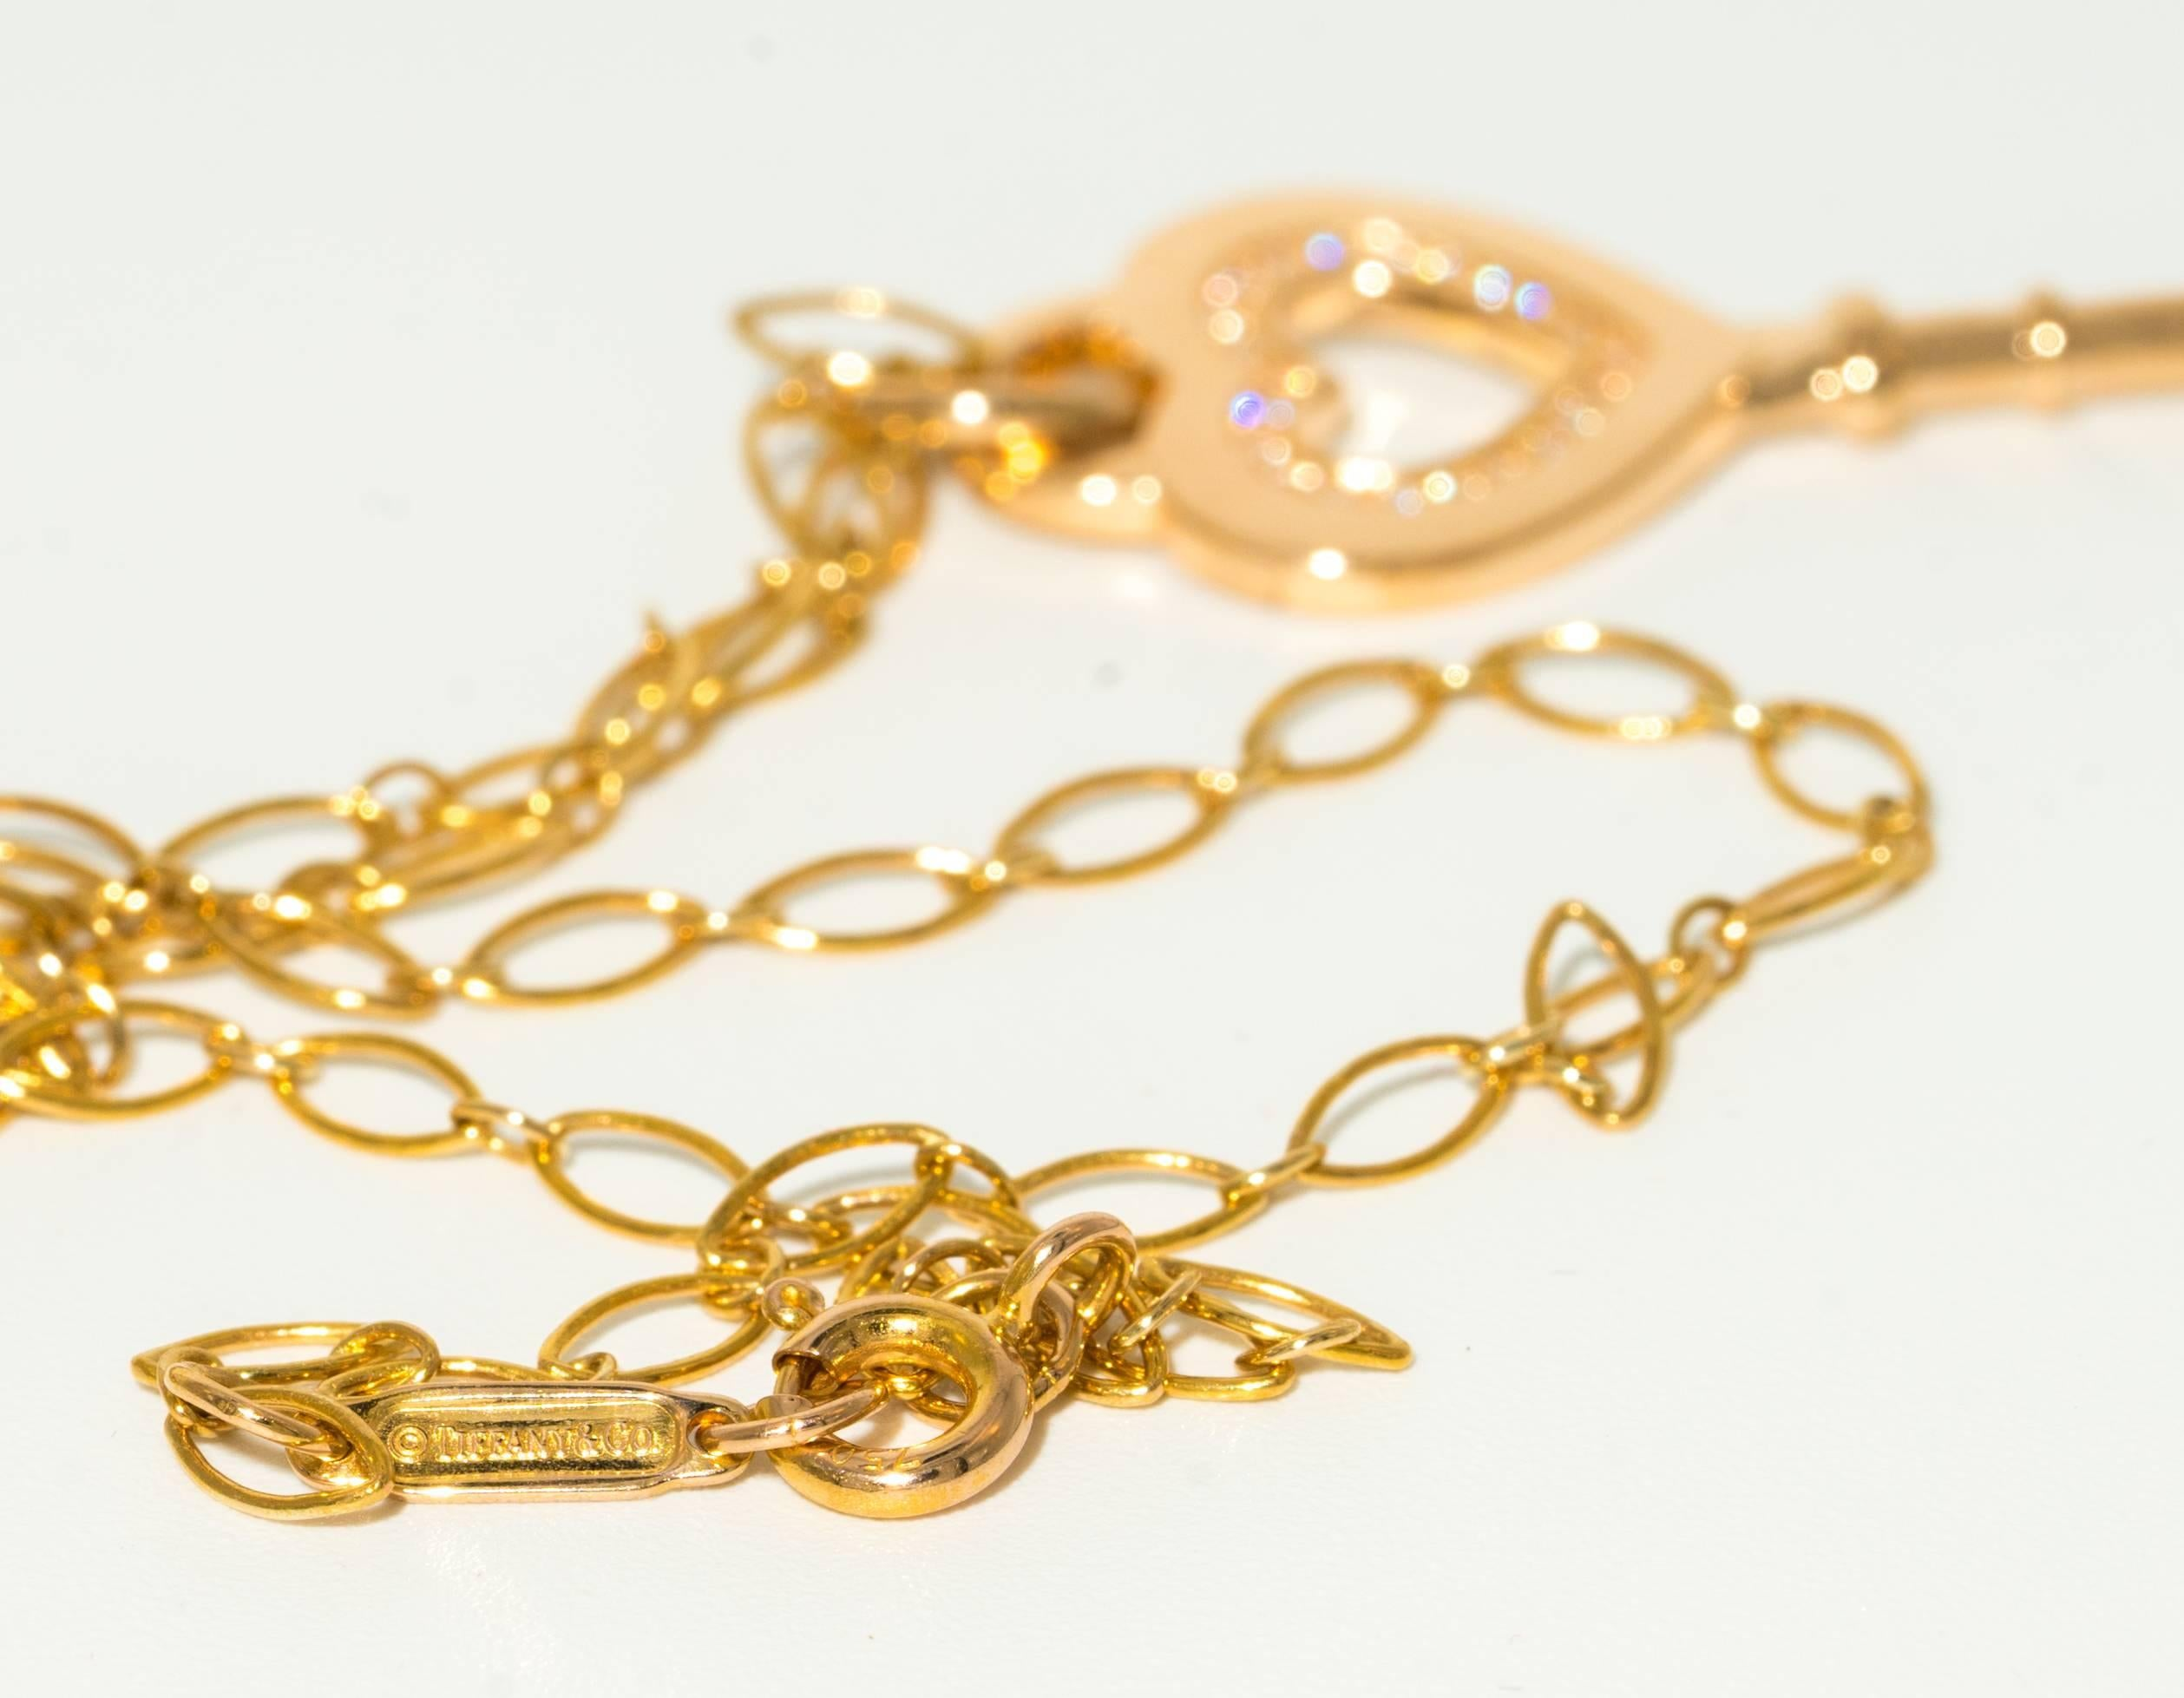 63b2826d4 Tiffany and Co. Heart Key Pendant with Diamonds and Chain in 18 Karat  Yellow Gold at 1stdibs